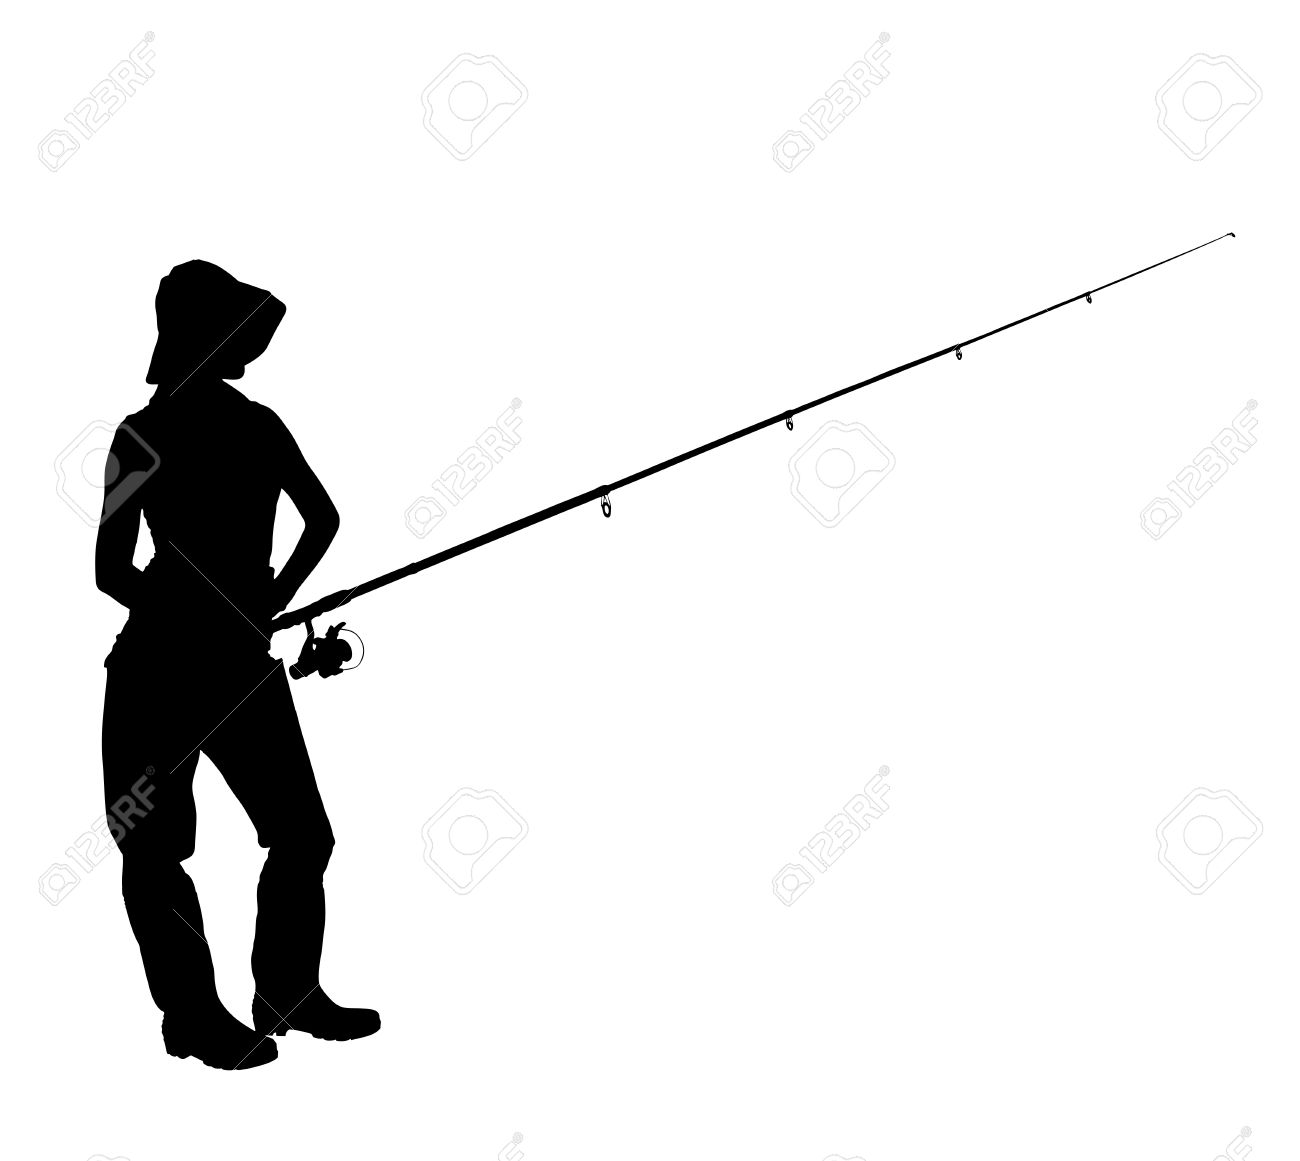 A Silhouette Of A Fisherwoman Holding A Fishing Pole Isolated